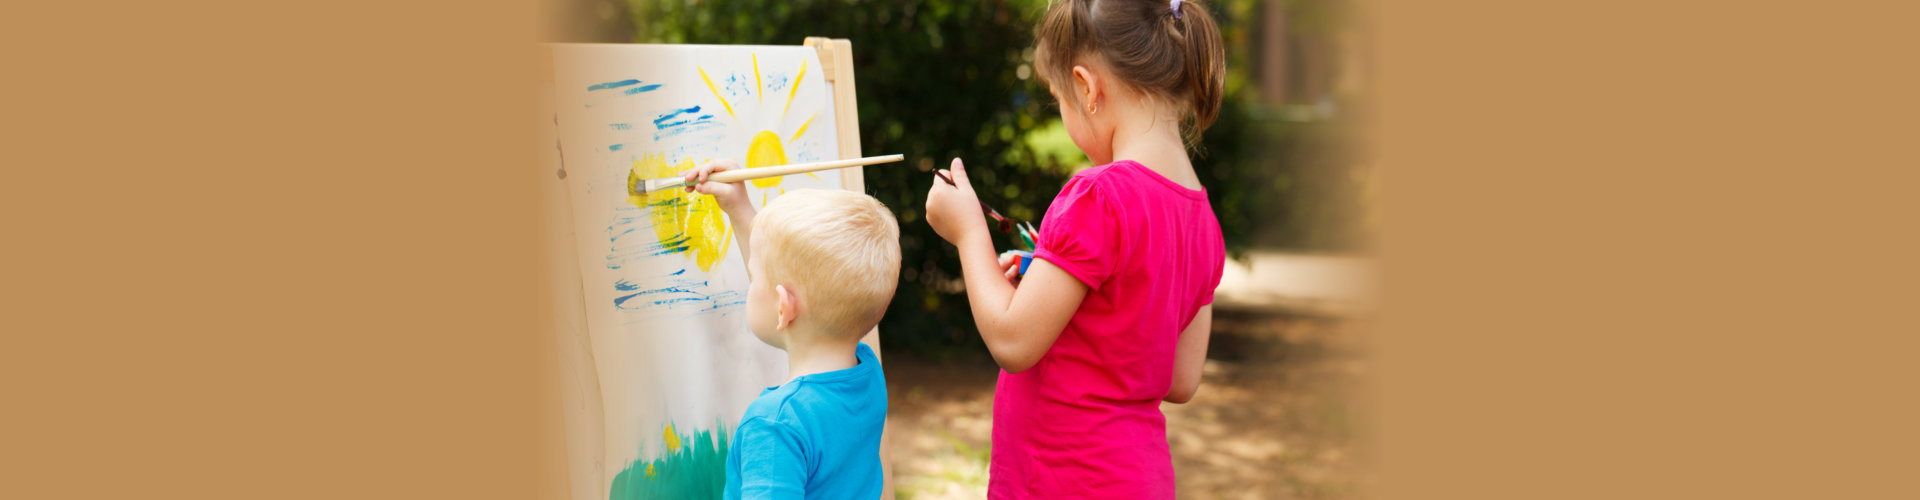 Pre-school children painting at the park